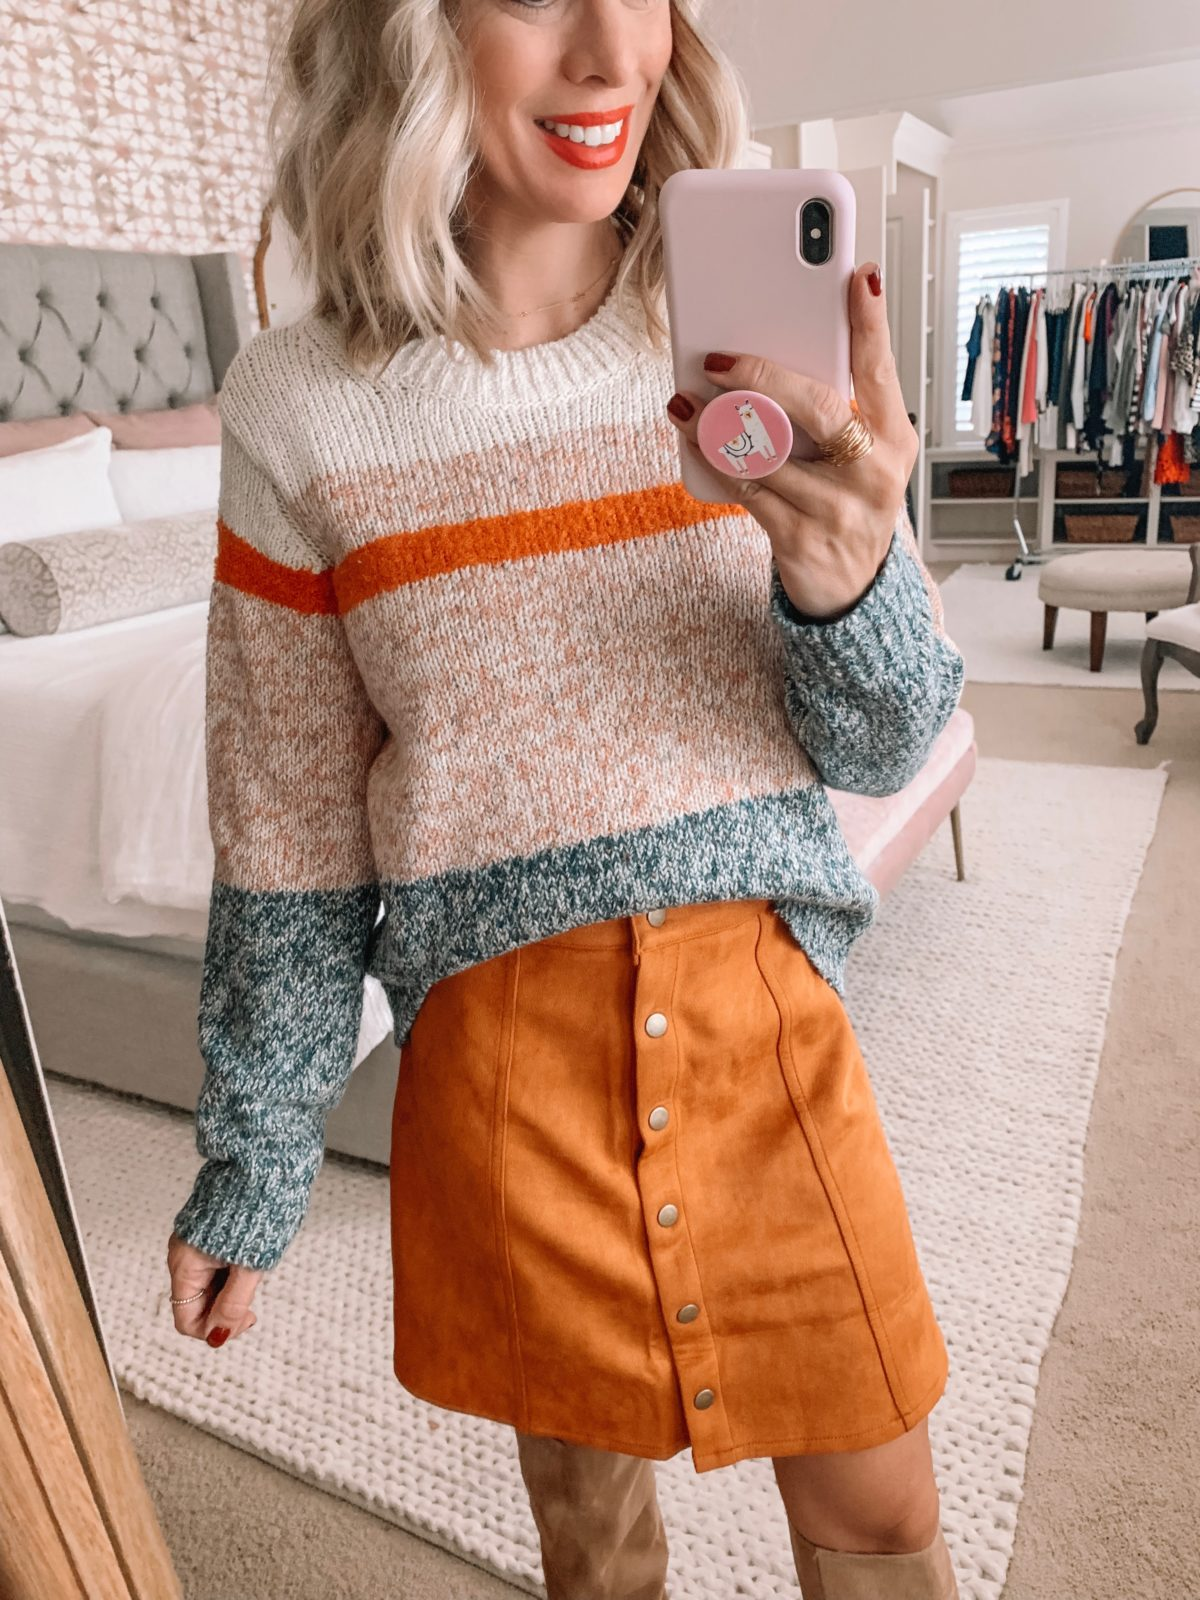 Amazon Prime Fashion- Sweater and Corduroy Skirt